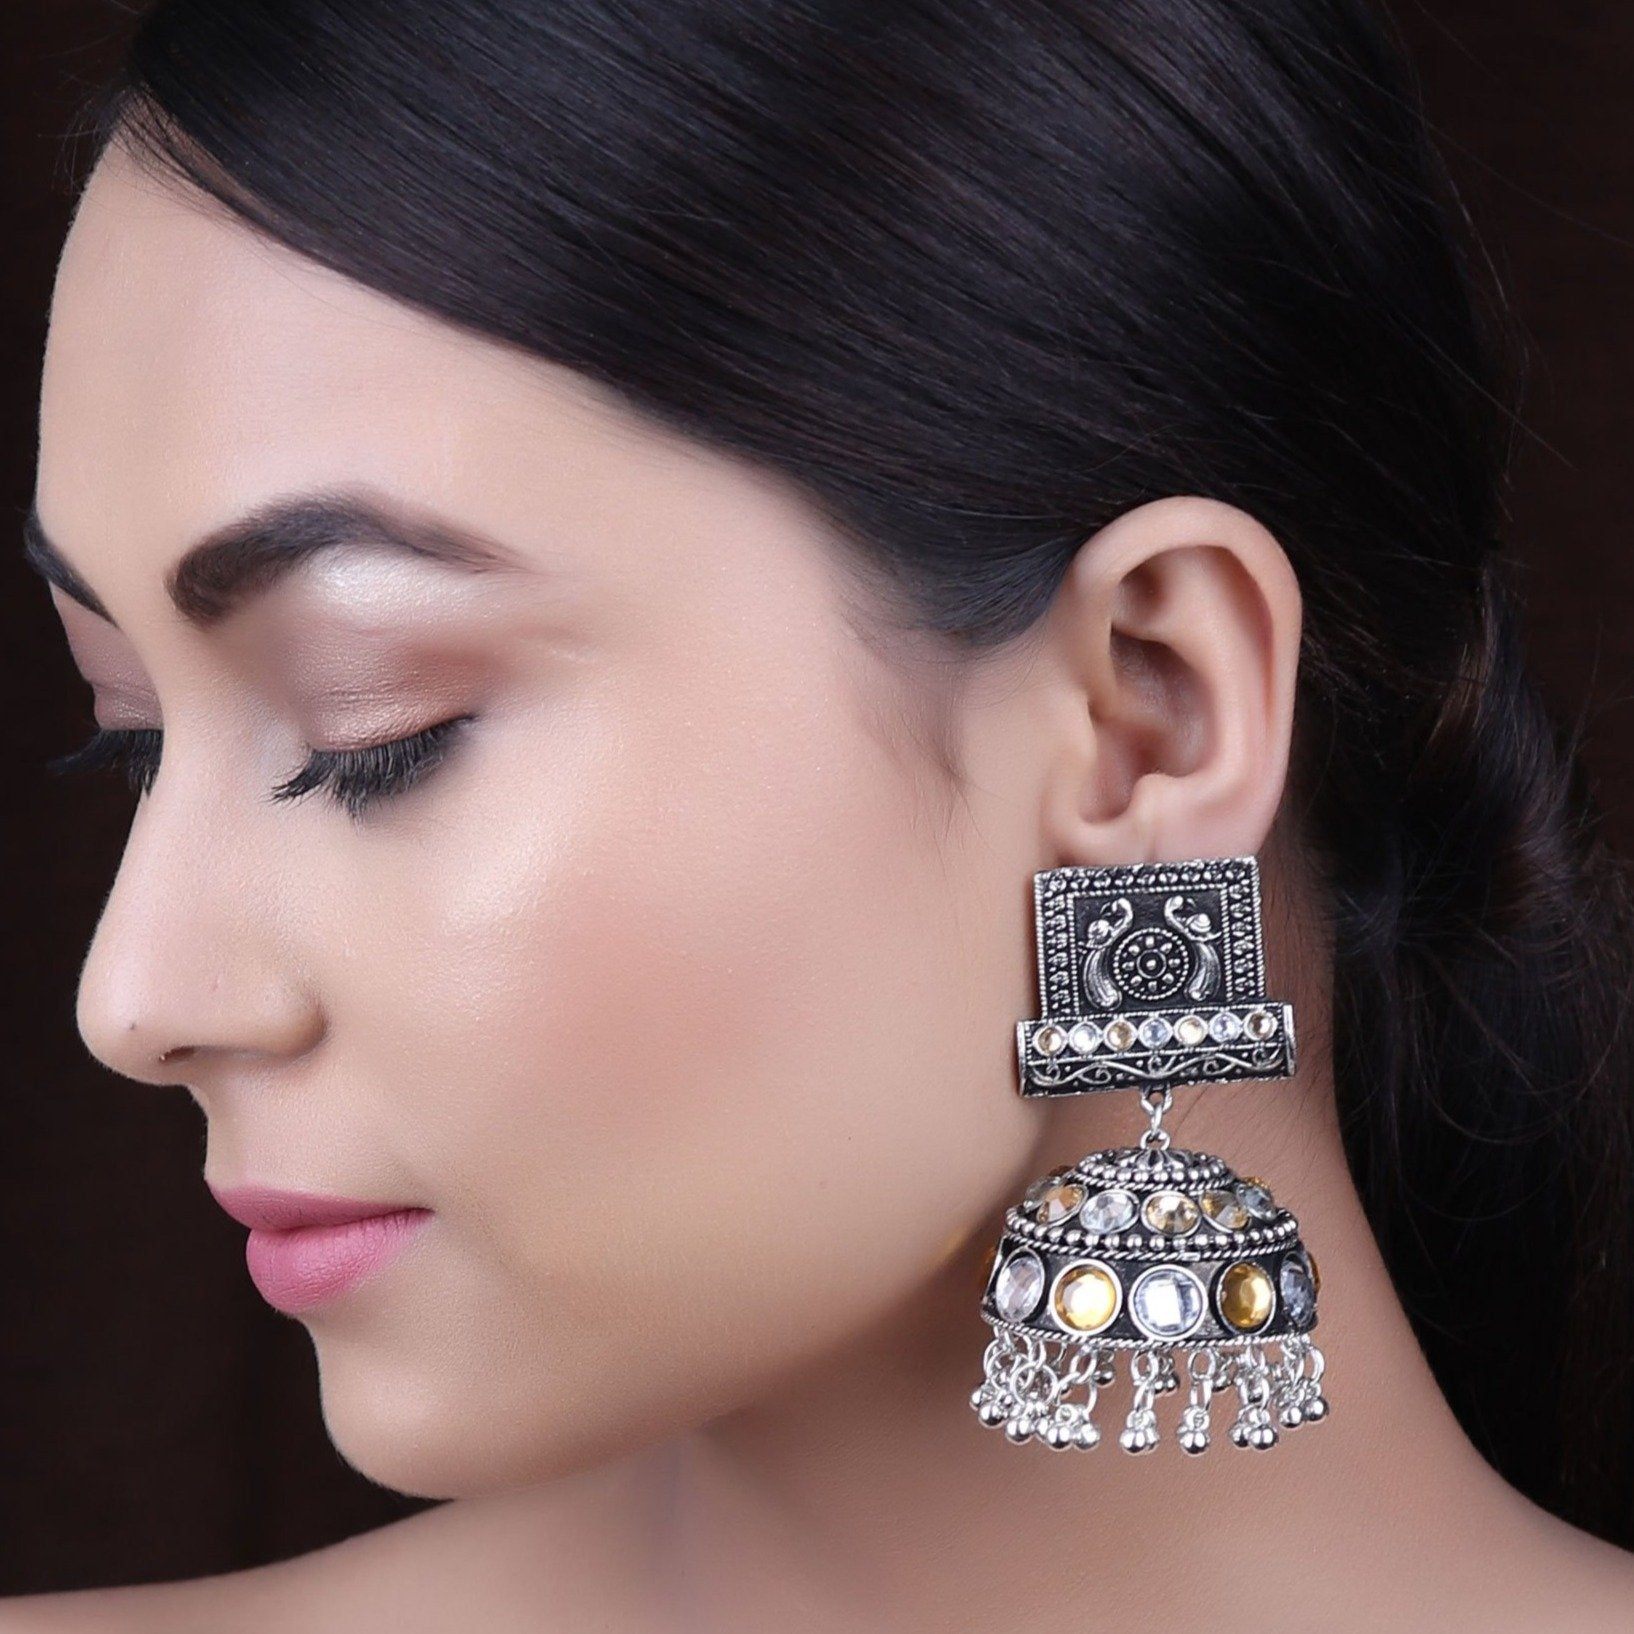 Earrings,The Farbella Jhoomer Earrings in White & Cream - Cippele Multi Store